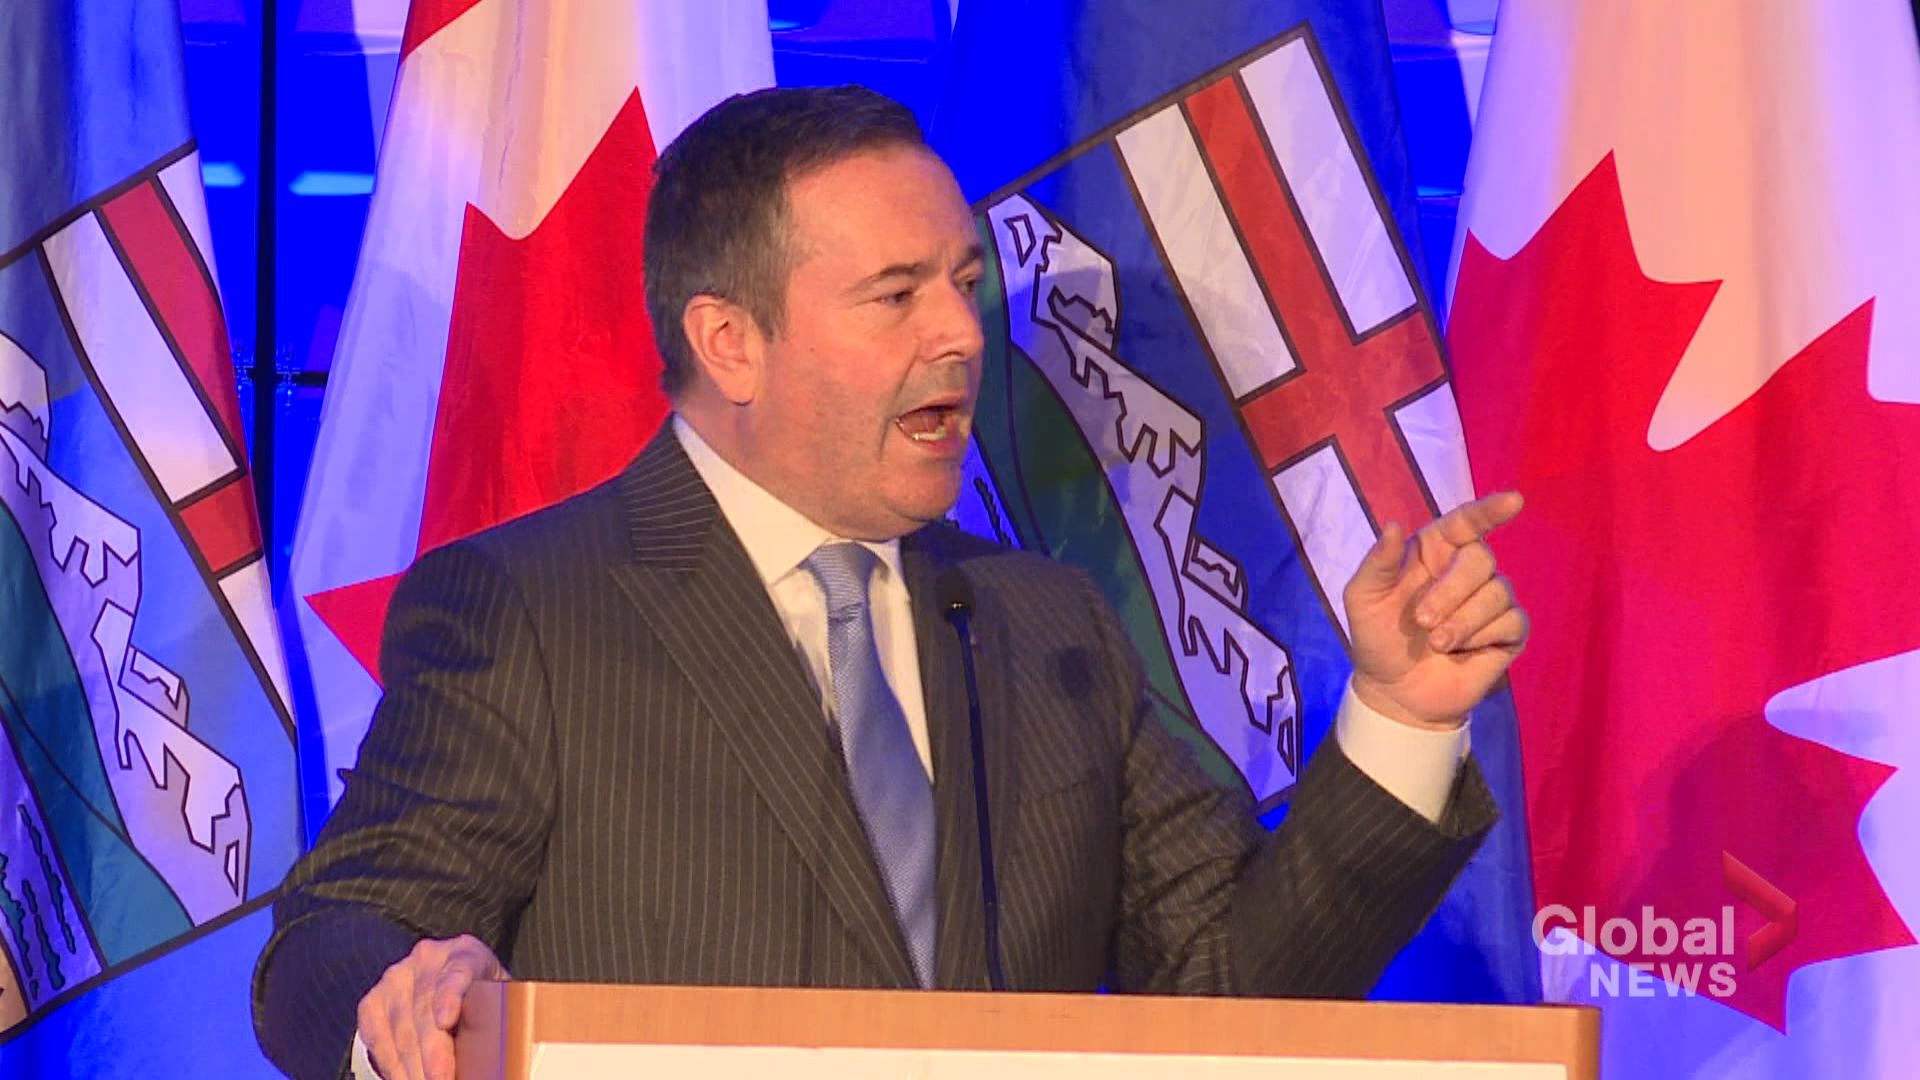 Kenney says Quebec needs to 'pick a lane' on equalization payments, oil industry